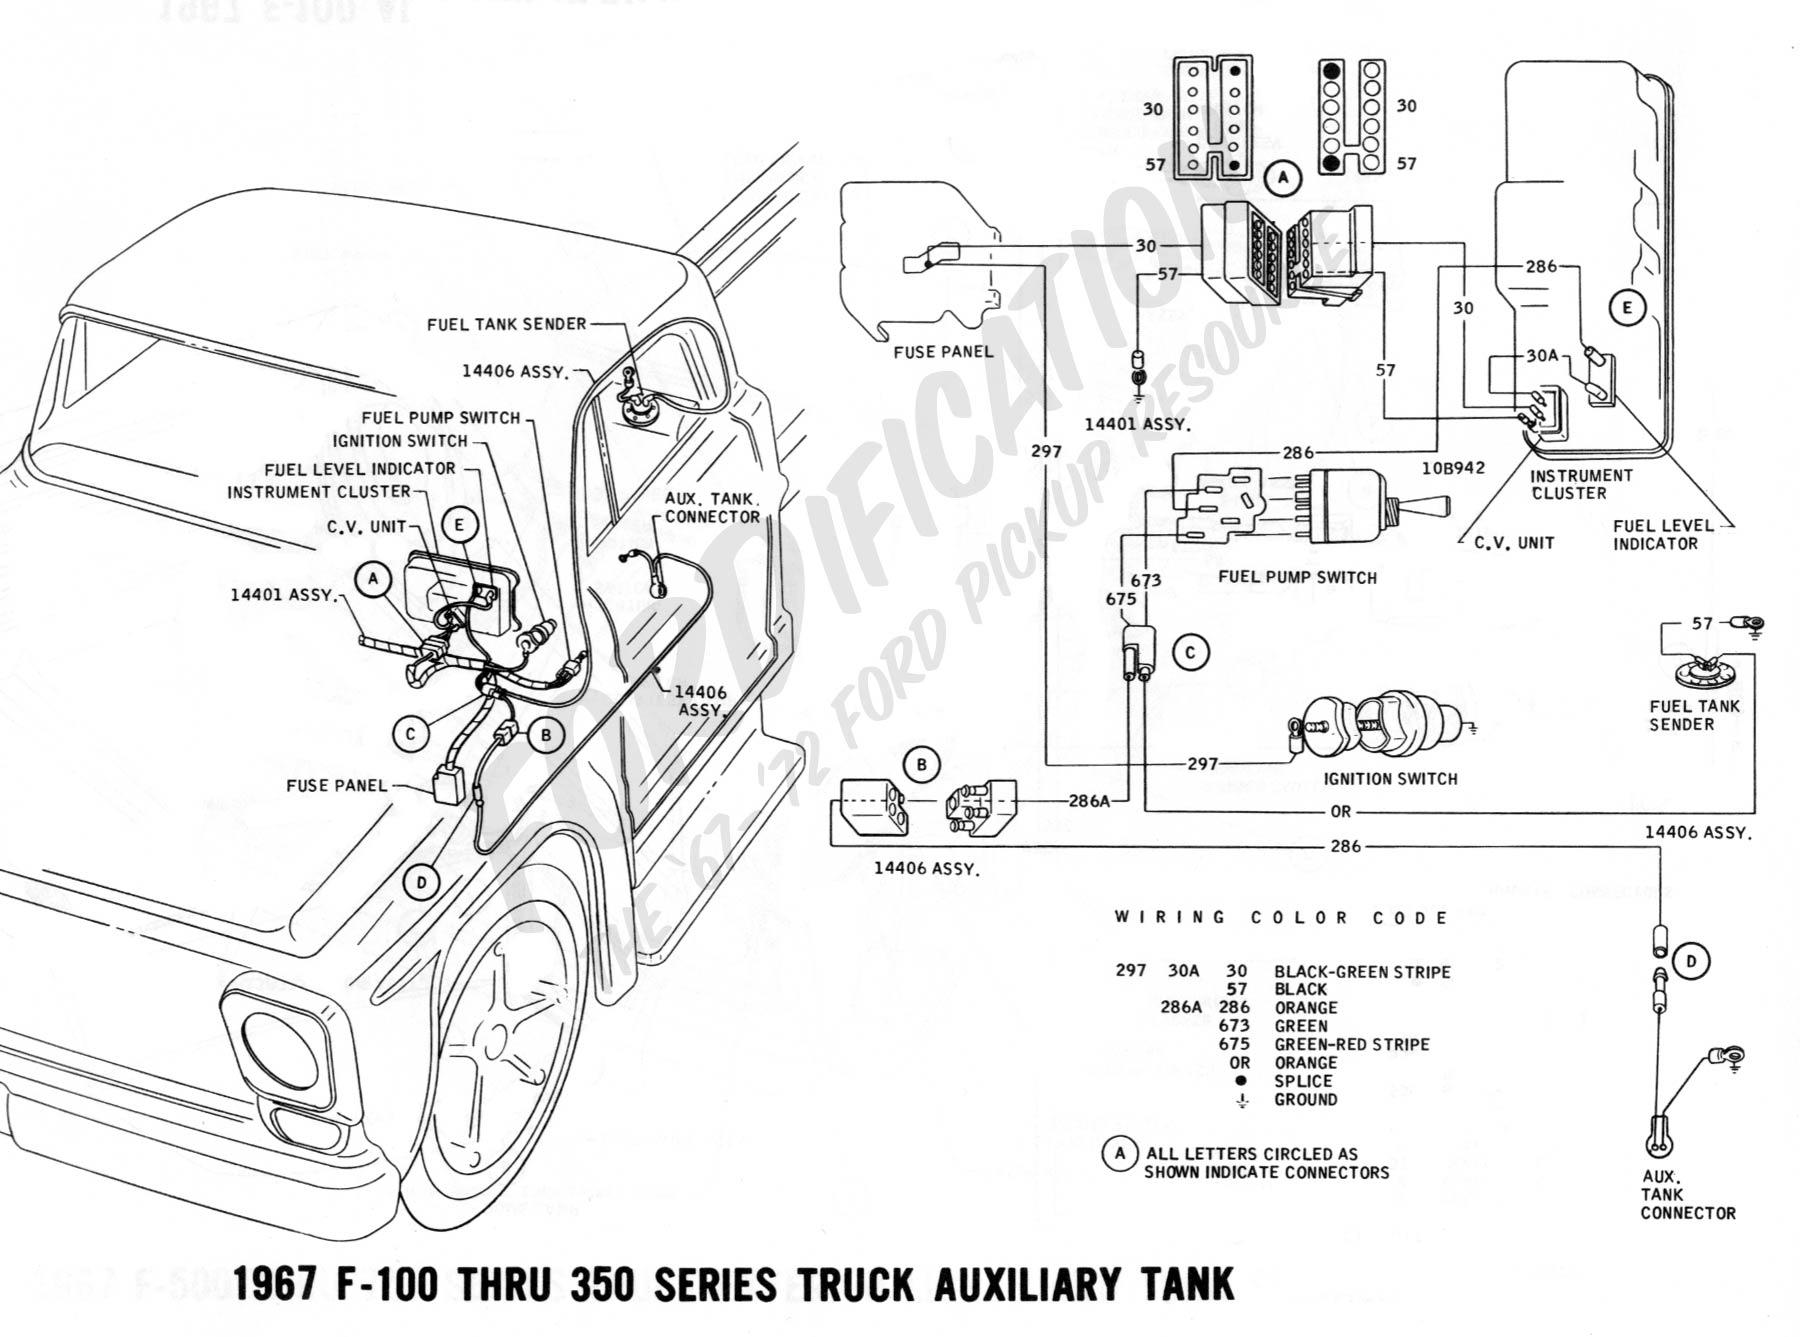 wiring 1967auxtank ford truck technical drawings and schematics section h wiring wiring diagrams for 2017 ford trucks at webbmarketing.co